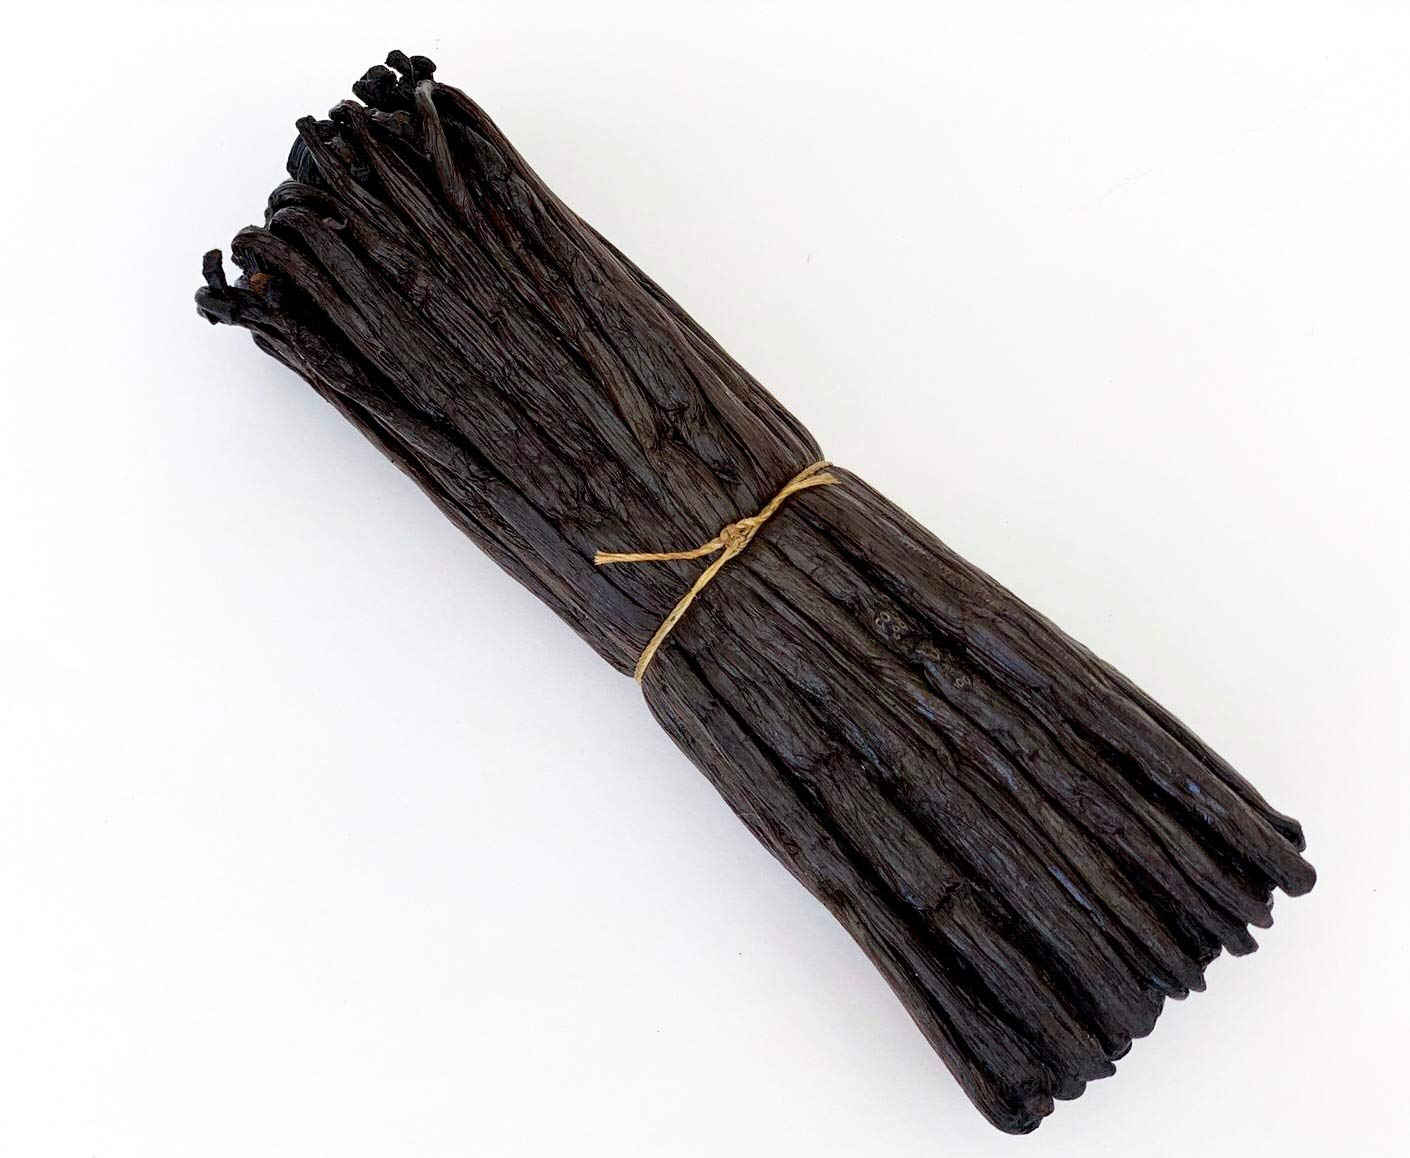 Madagascar Vanilla Beans Grade A for Extract, Cooking and Baking (12ea) by FITNCLEAN VANILLA. 5.5''-7'' Bourbon Fresh Gourmet NON-GMO Whole Pods by FITNCLEAN SPICES